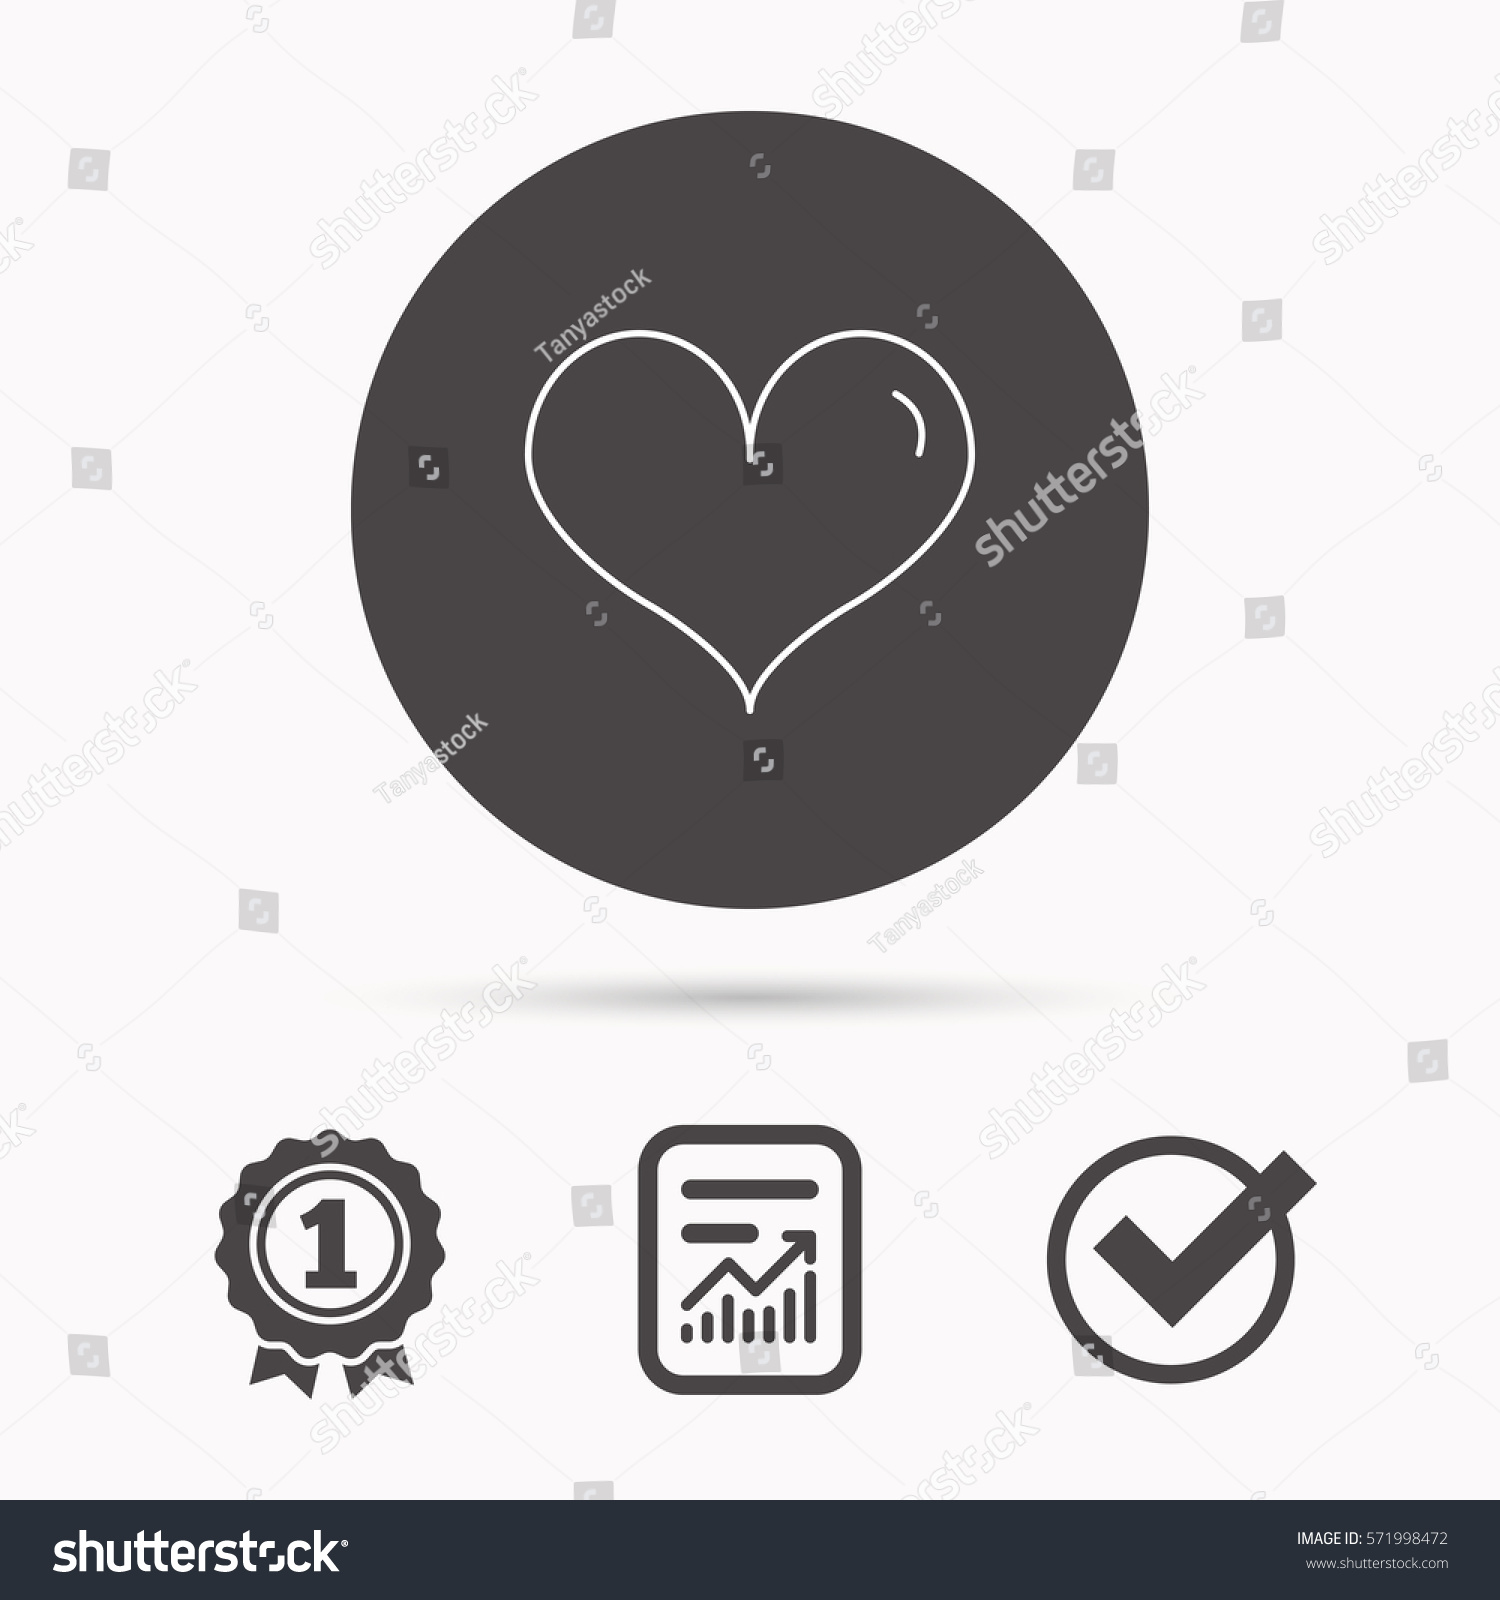 Heart Icon Love Sign Life Symbol Stock Illustration 571998472